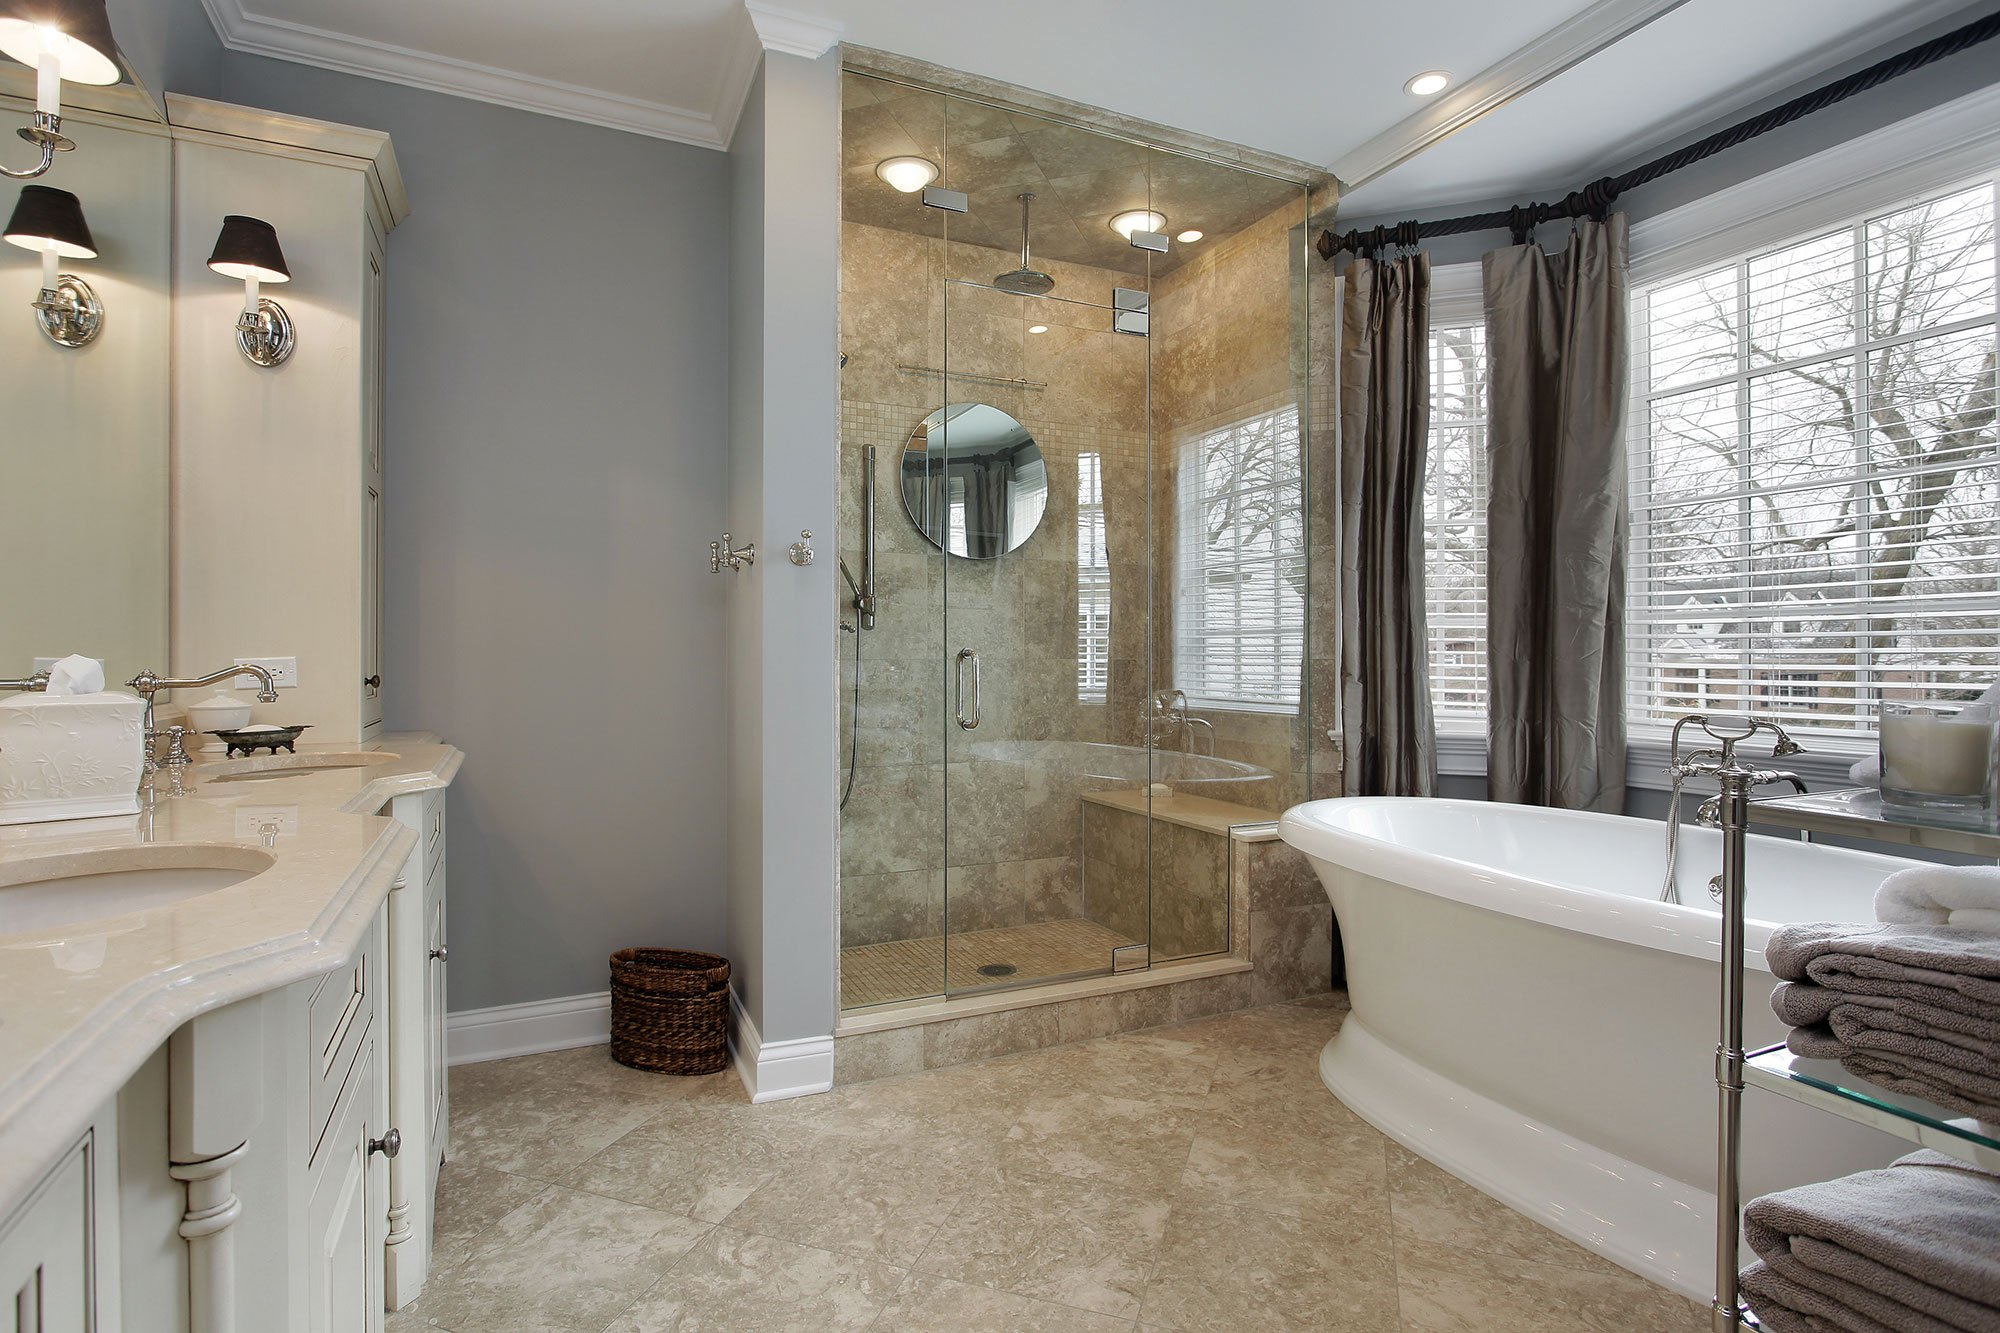 Bathroom remodel contractors in Benton, Arkansas